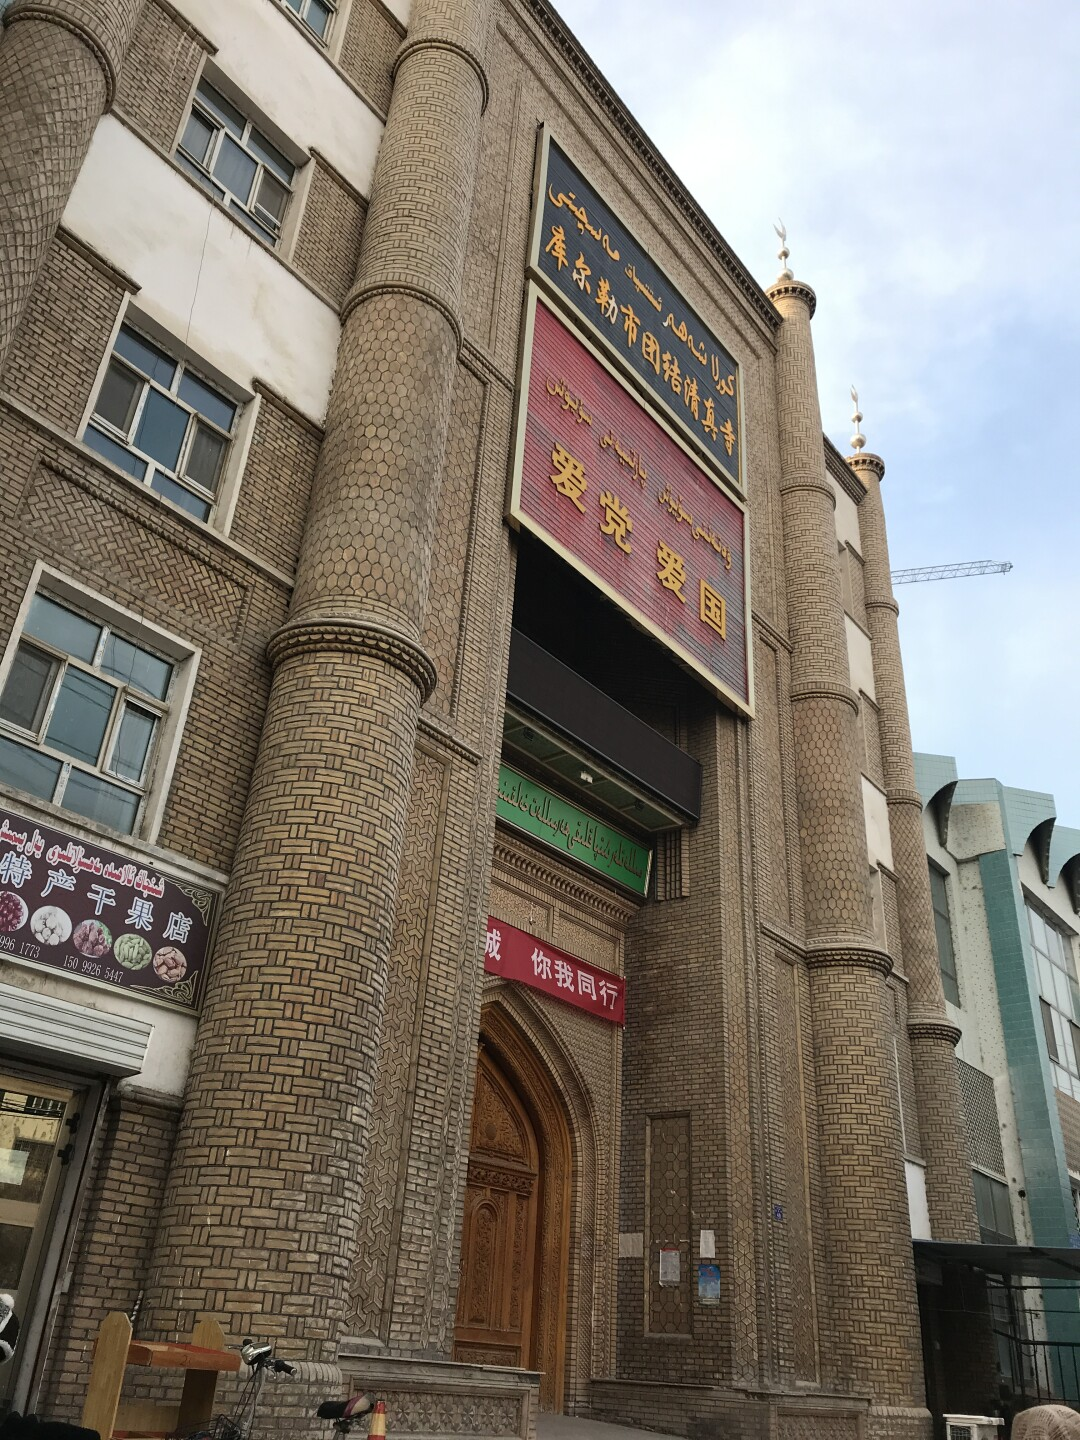 Many mosques in Korla, Xinjiang, have been destroyed, but The Times saw one left standing.